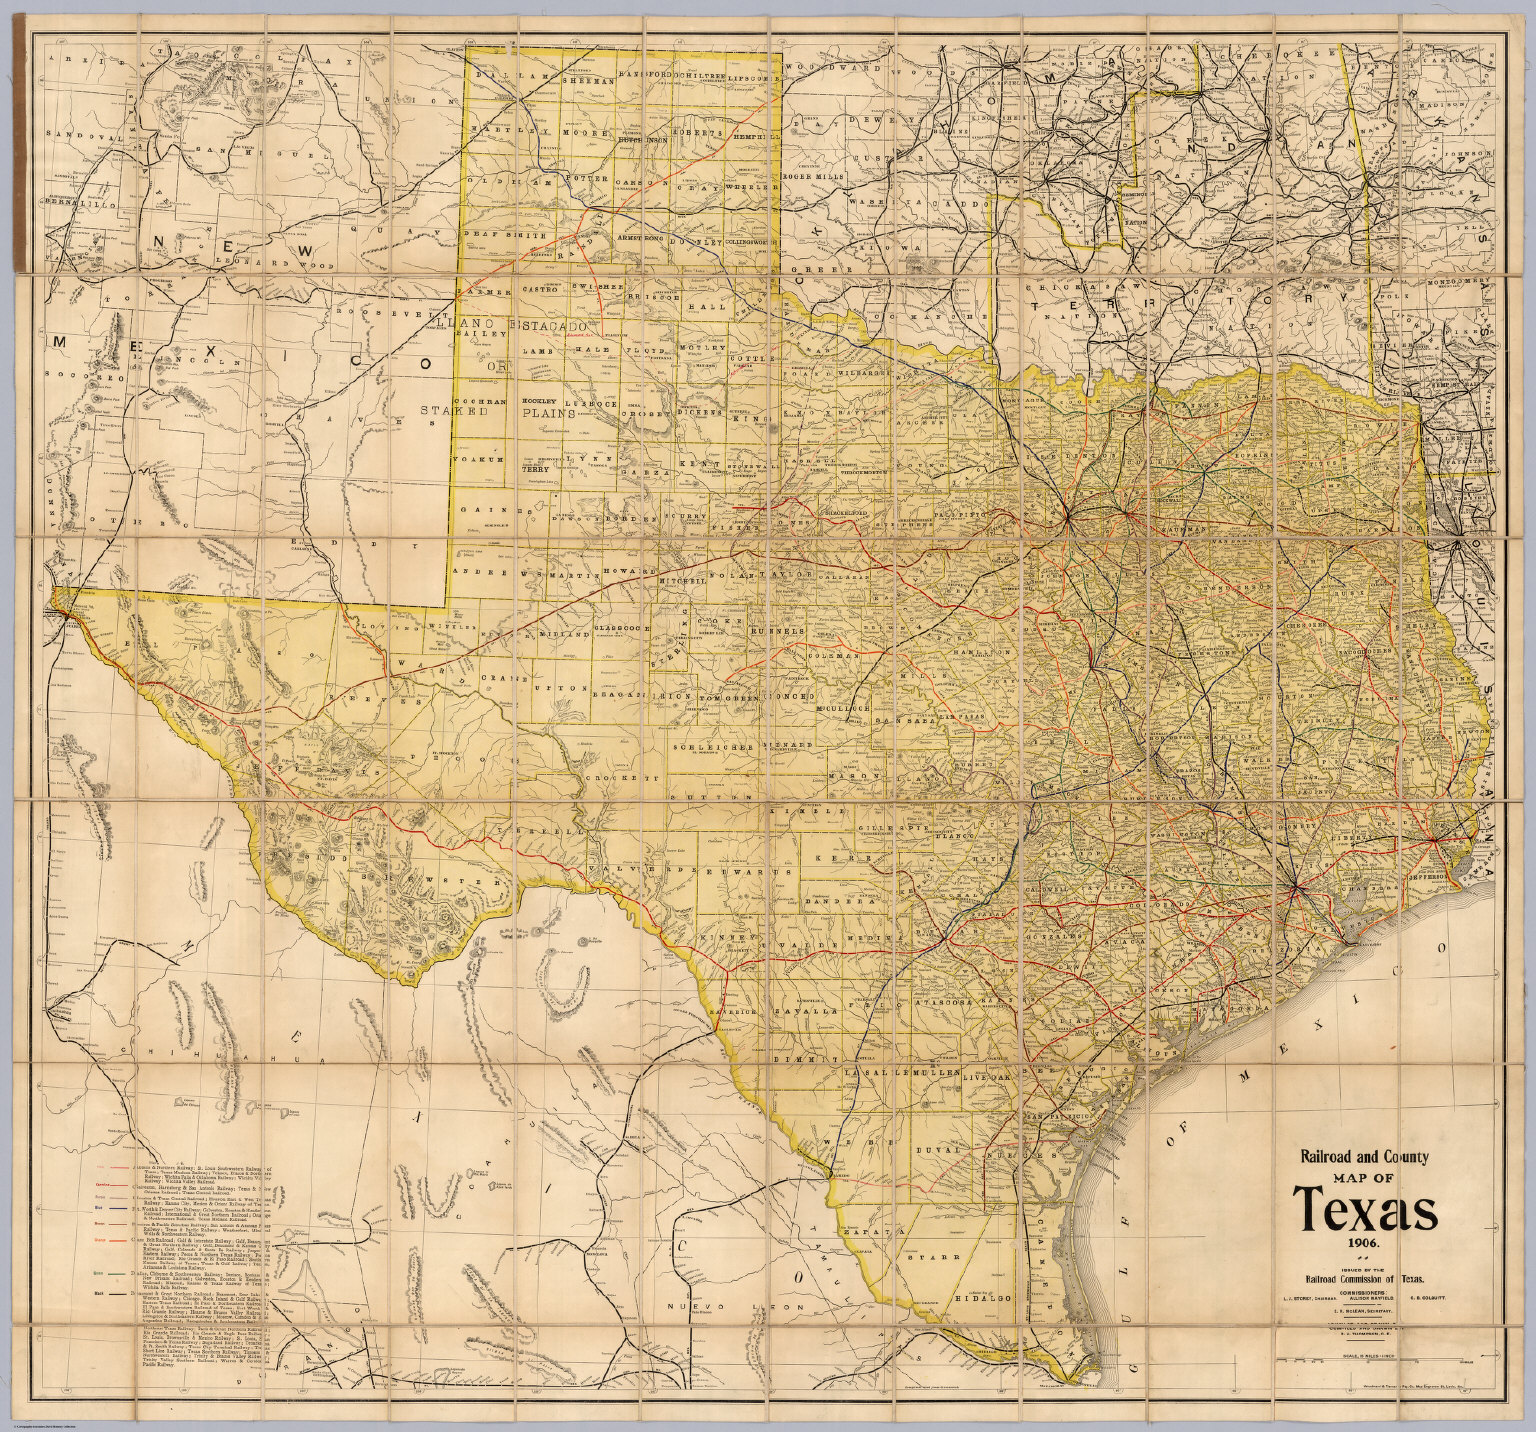 Railroad Map Of Texas.Railroad And County Map Of Texas David Rumsey Historical Map